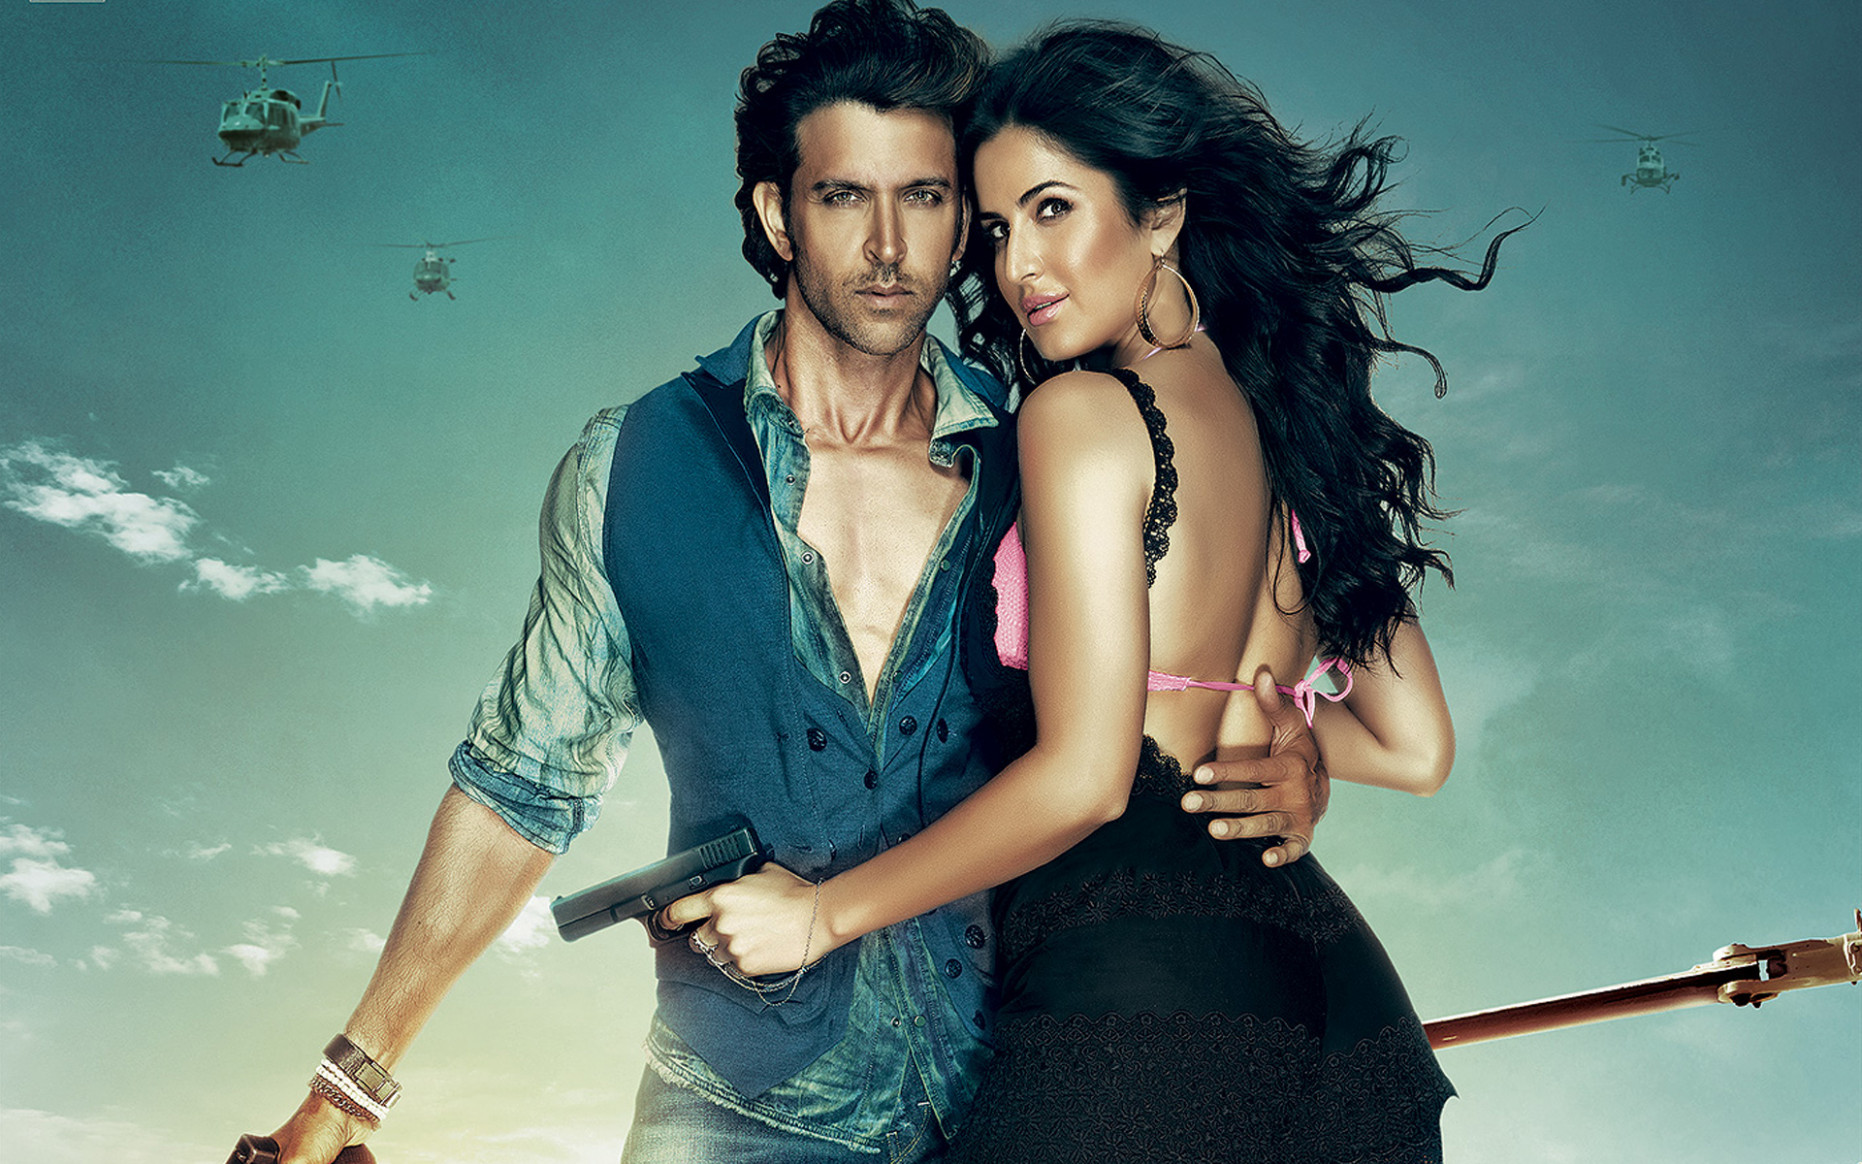 Bang Bang Bollywood Movie Wallpaper Couple wallpaper ...